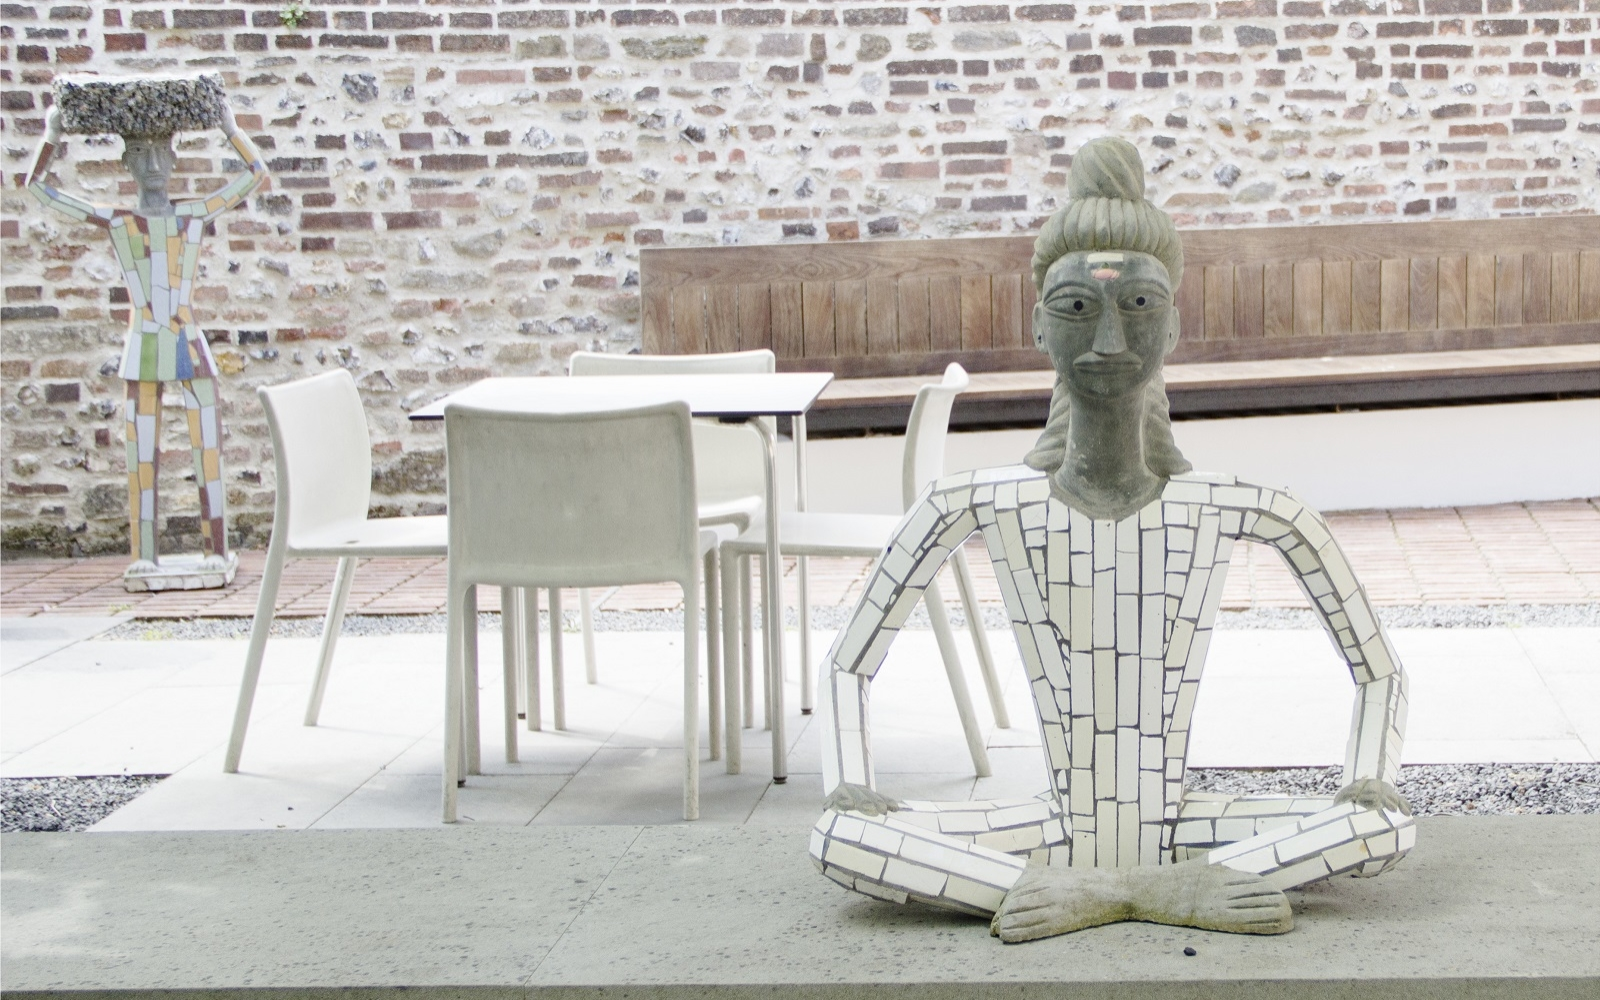 Nek Chand at Pallant House Gallery Photograph Oana Damir